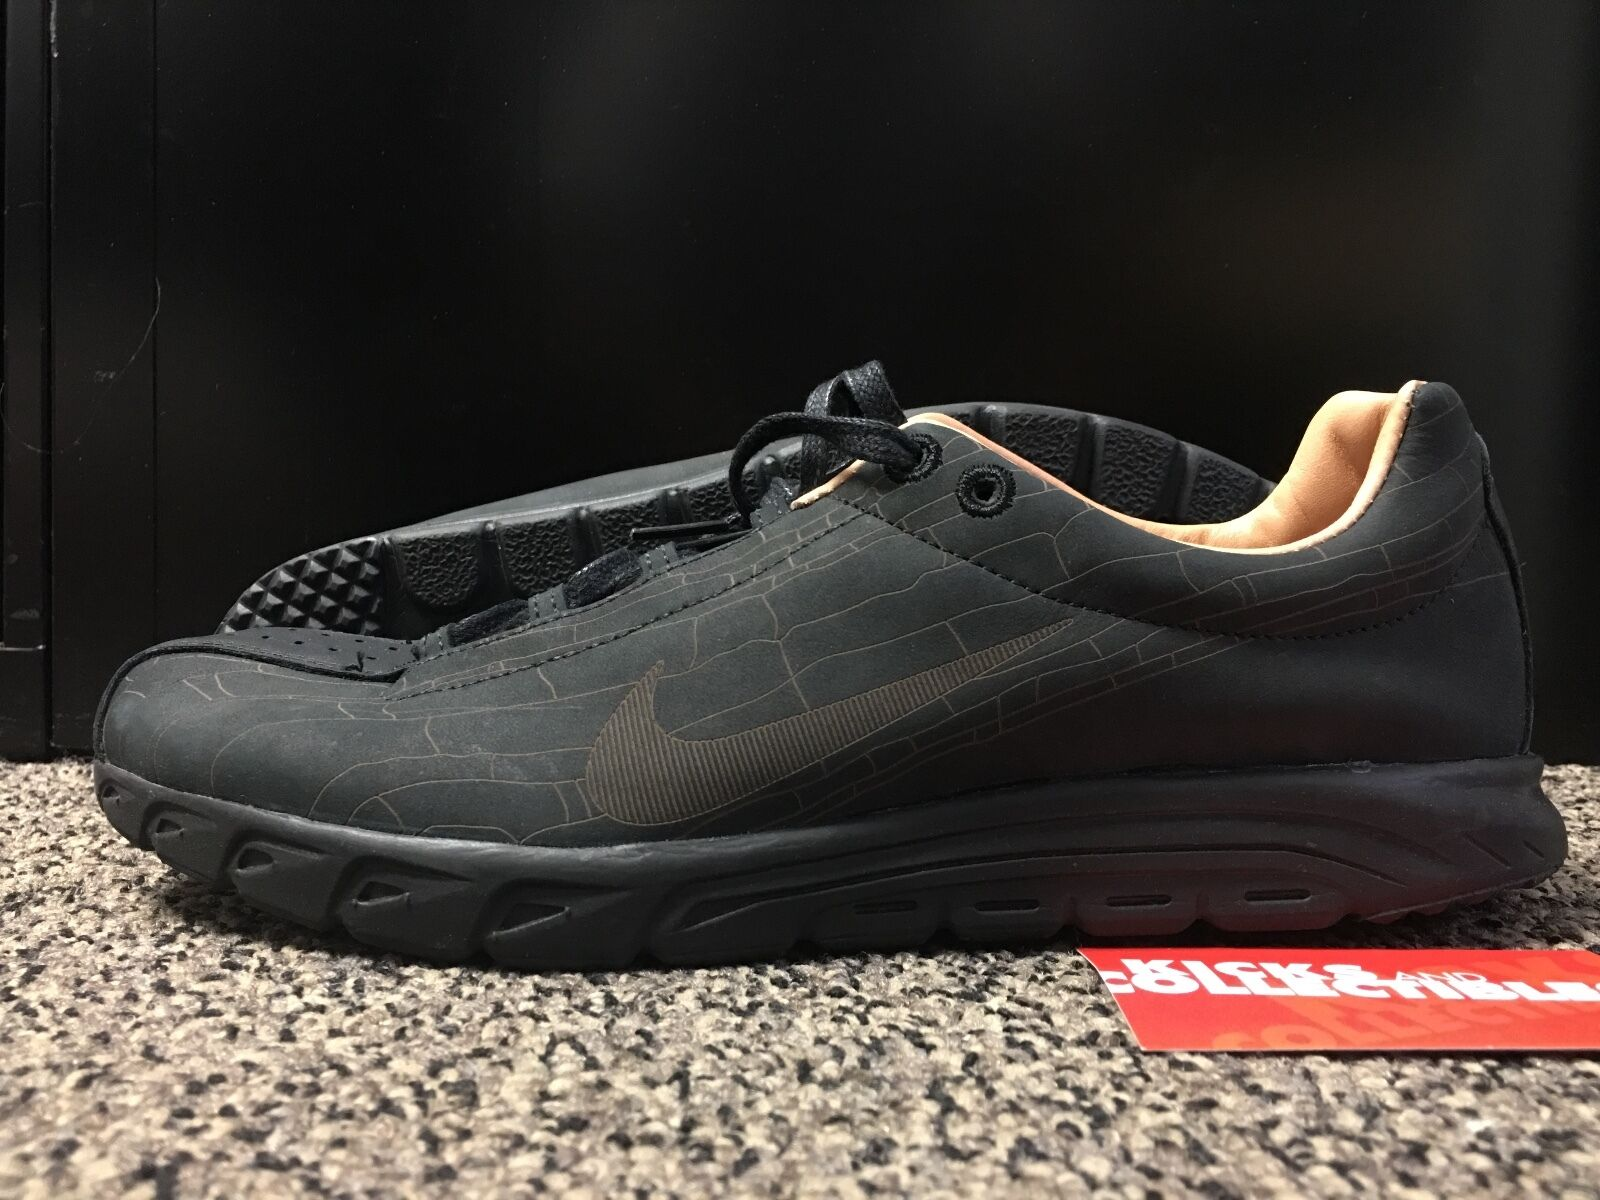 Nike eintagsfliege premium prm nsw 10 515003 515003 515003 011 schwarz max air ultra - light - 91f68f